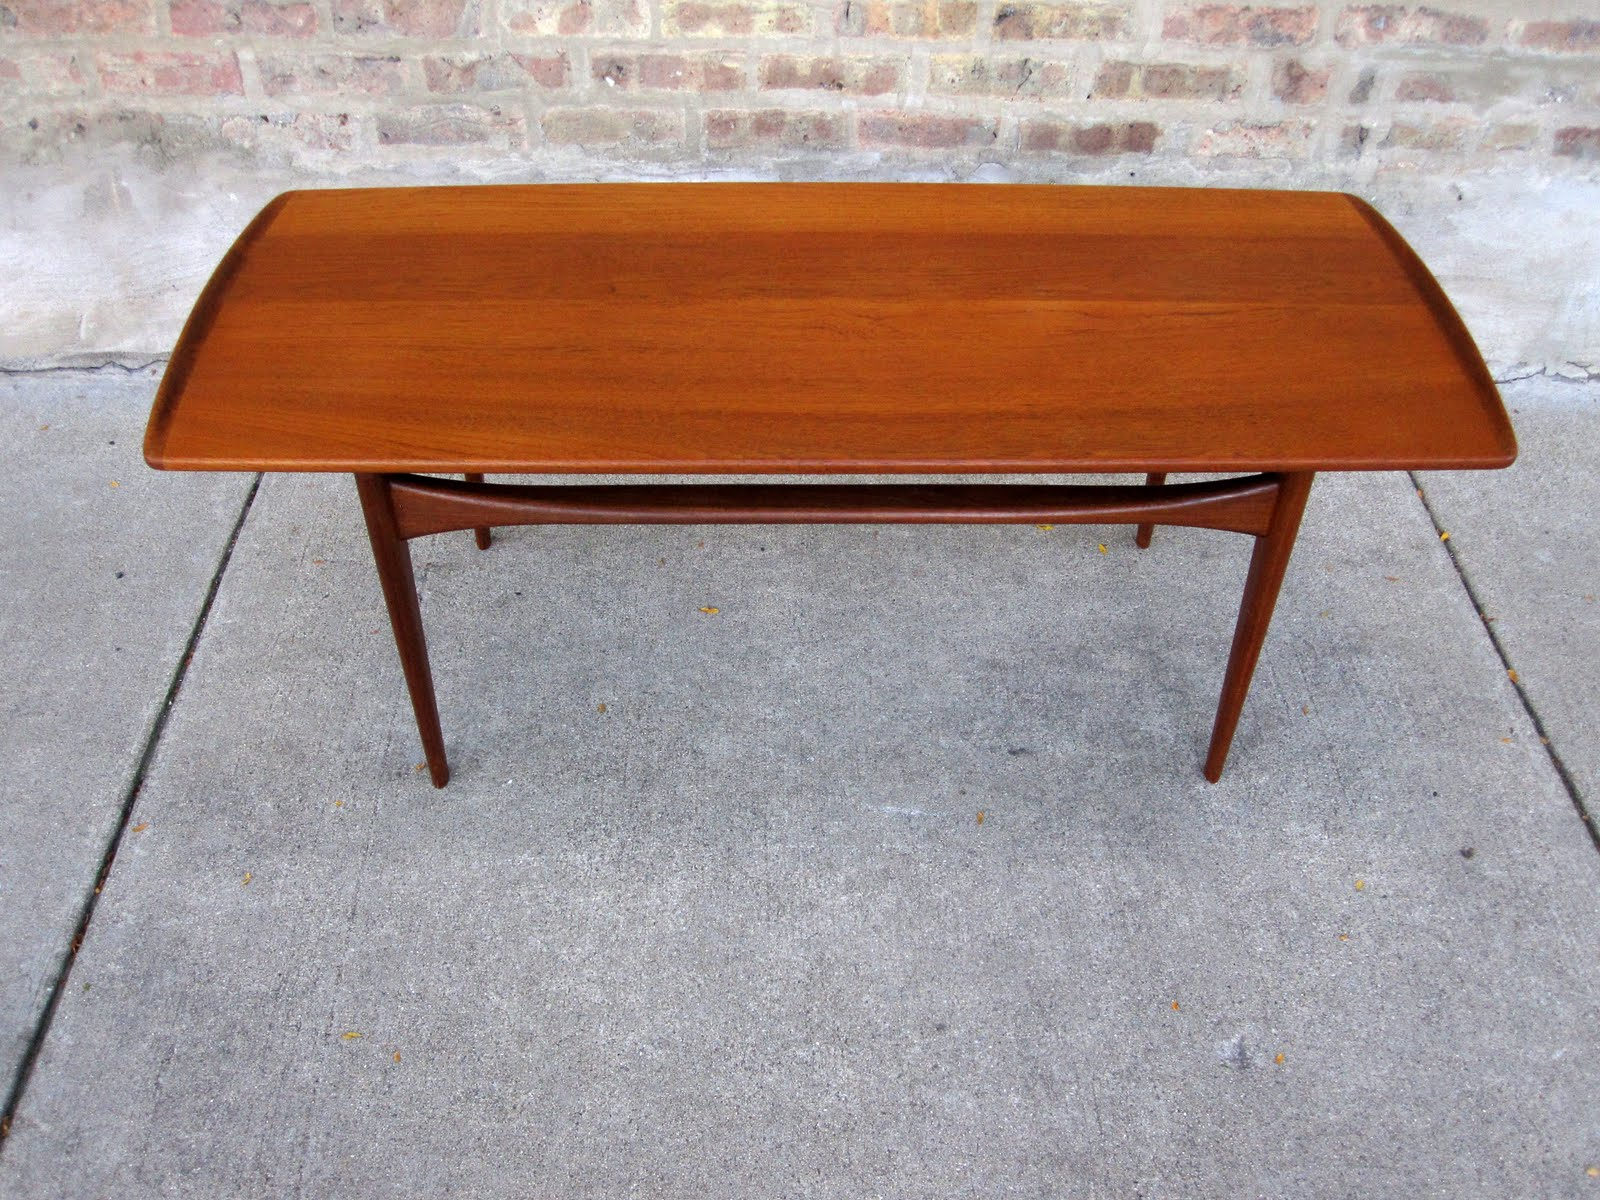 circa midcentury: 'finn juhl' teak coffee table